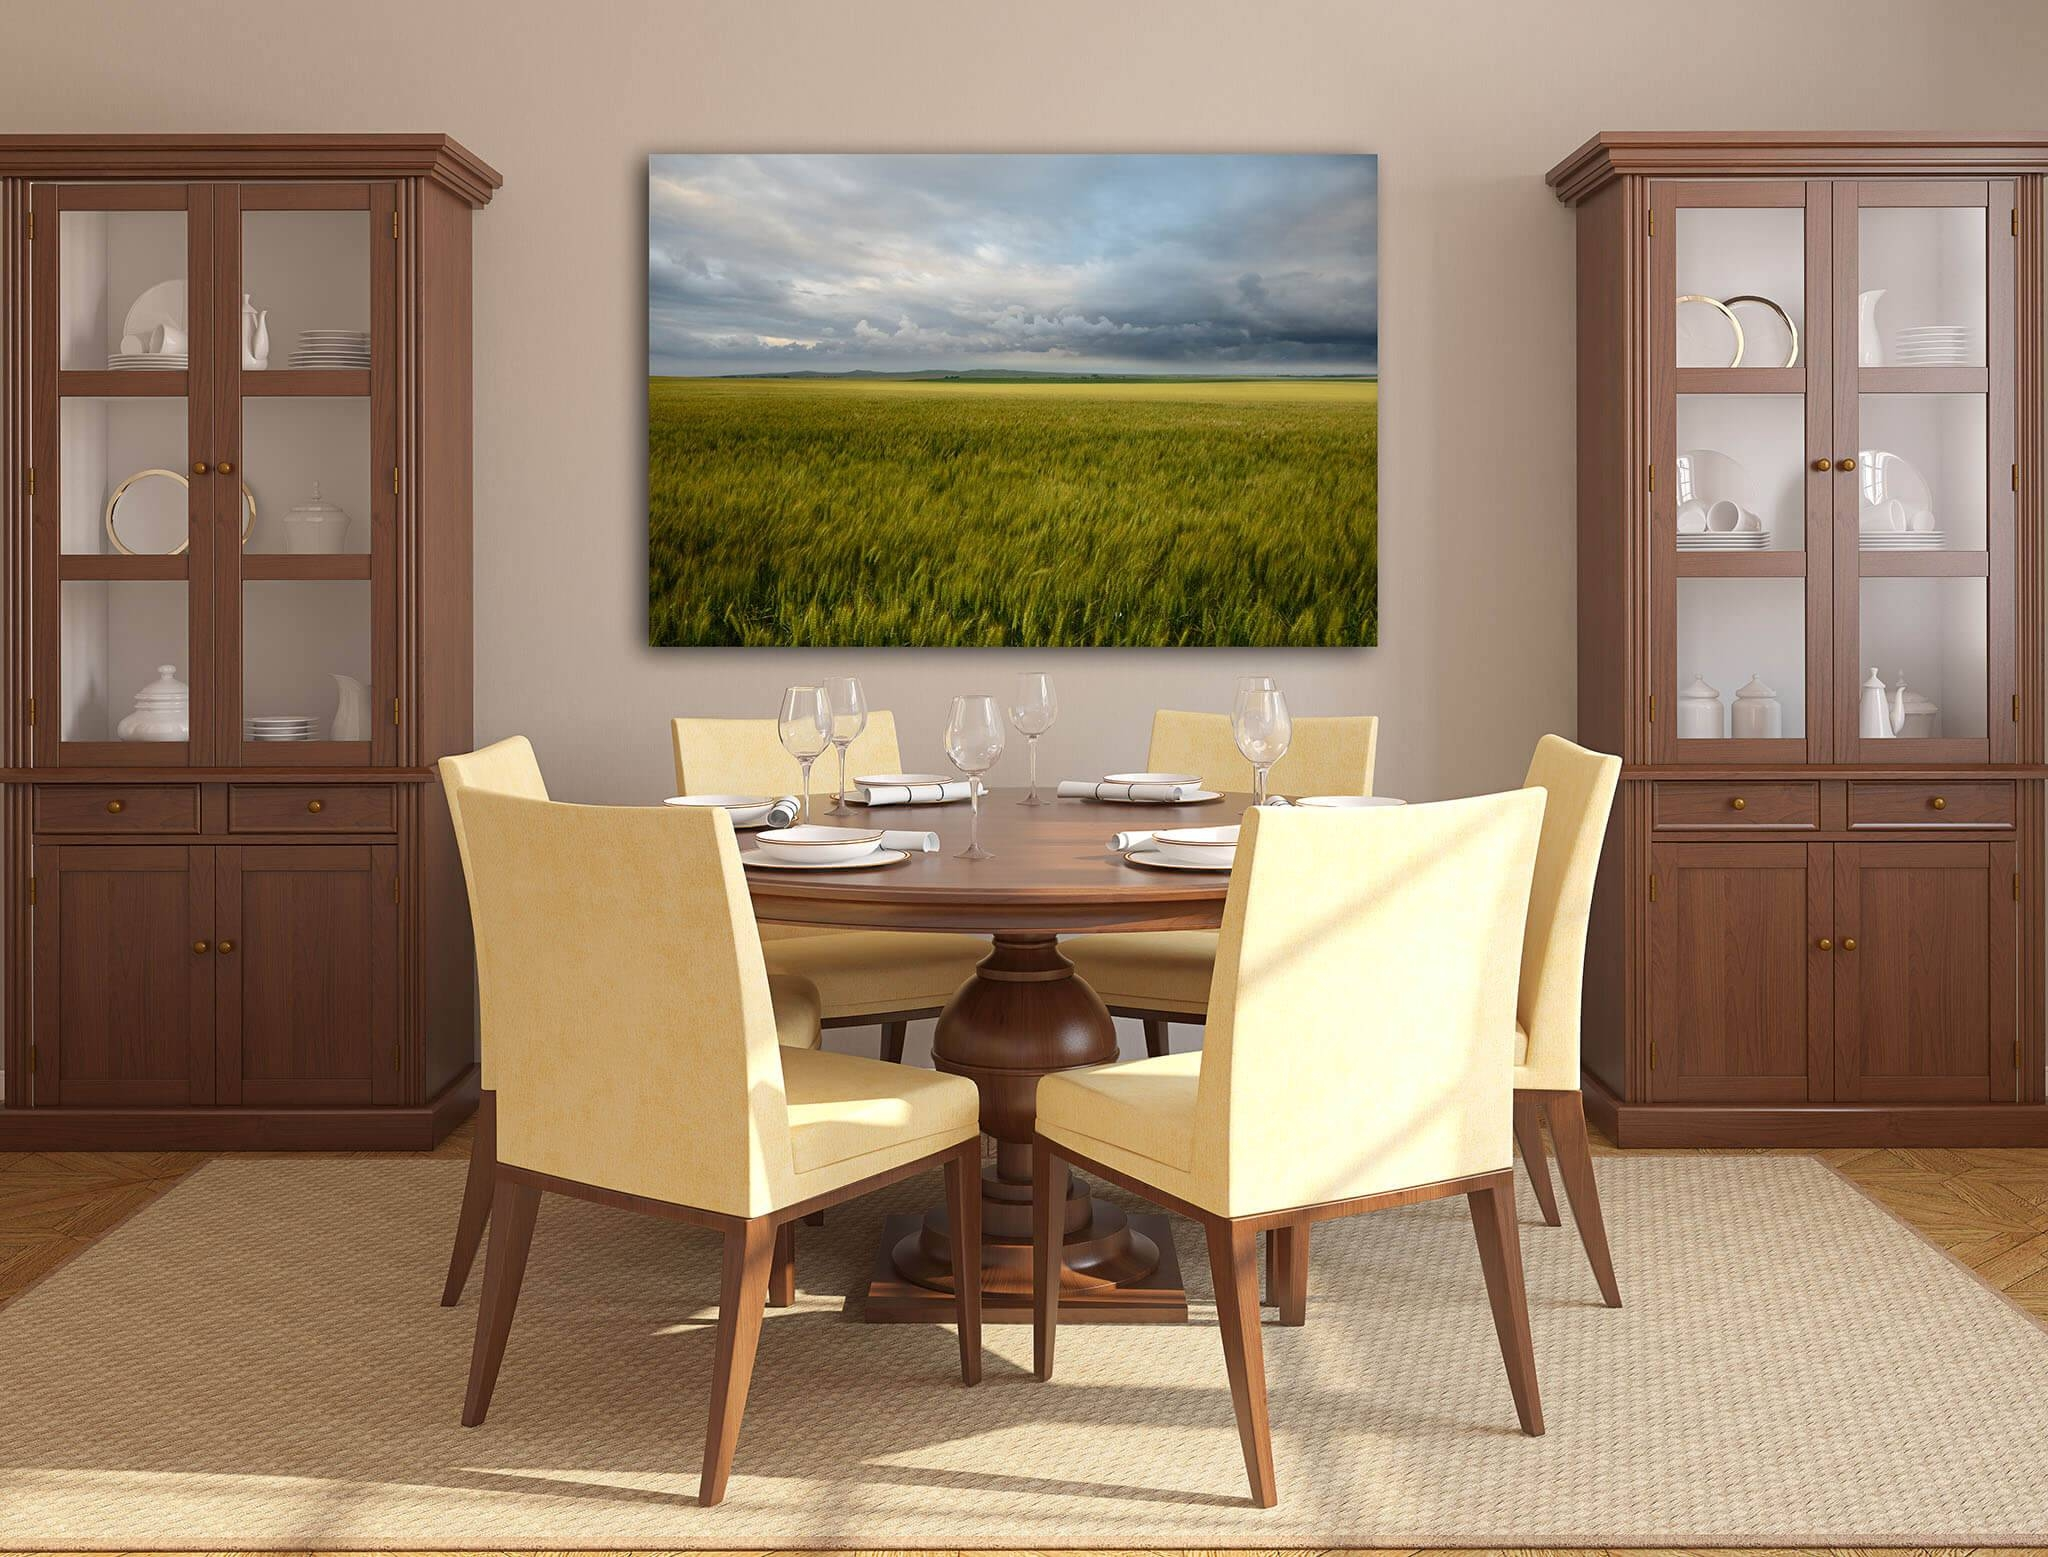 Kitchen & Dining Room Wall Art Ideas – Franklin Arts Pertaining To Most Popular Kitchen And Dining Wall Art (Gallery 20 of 25)